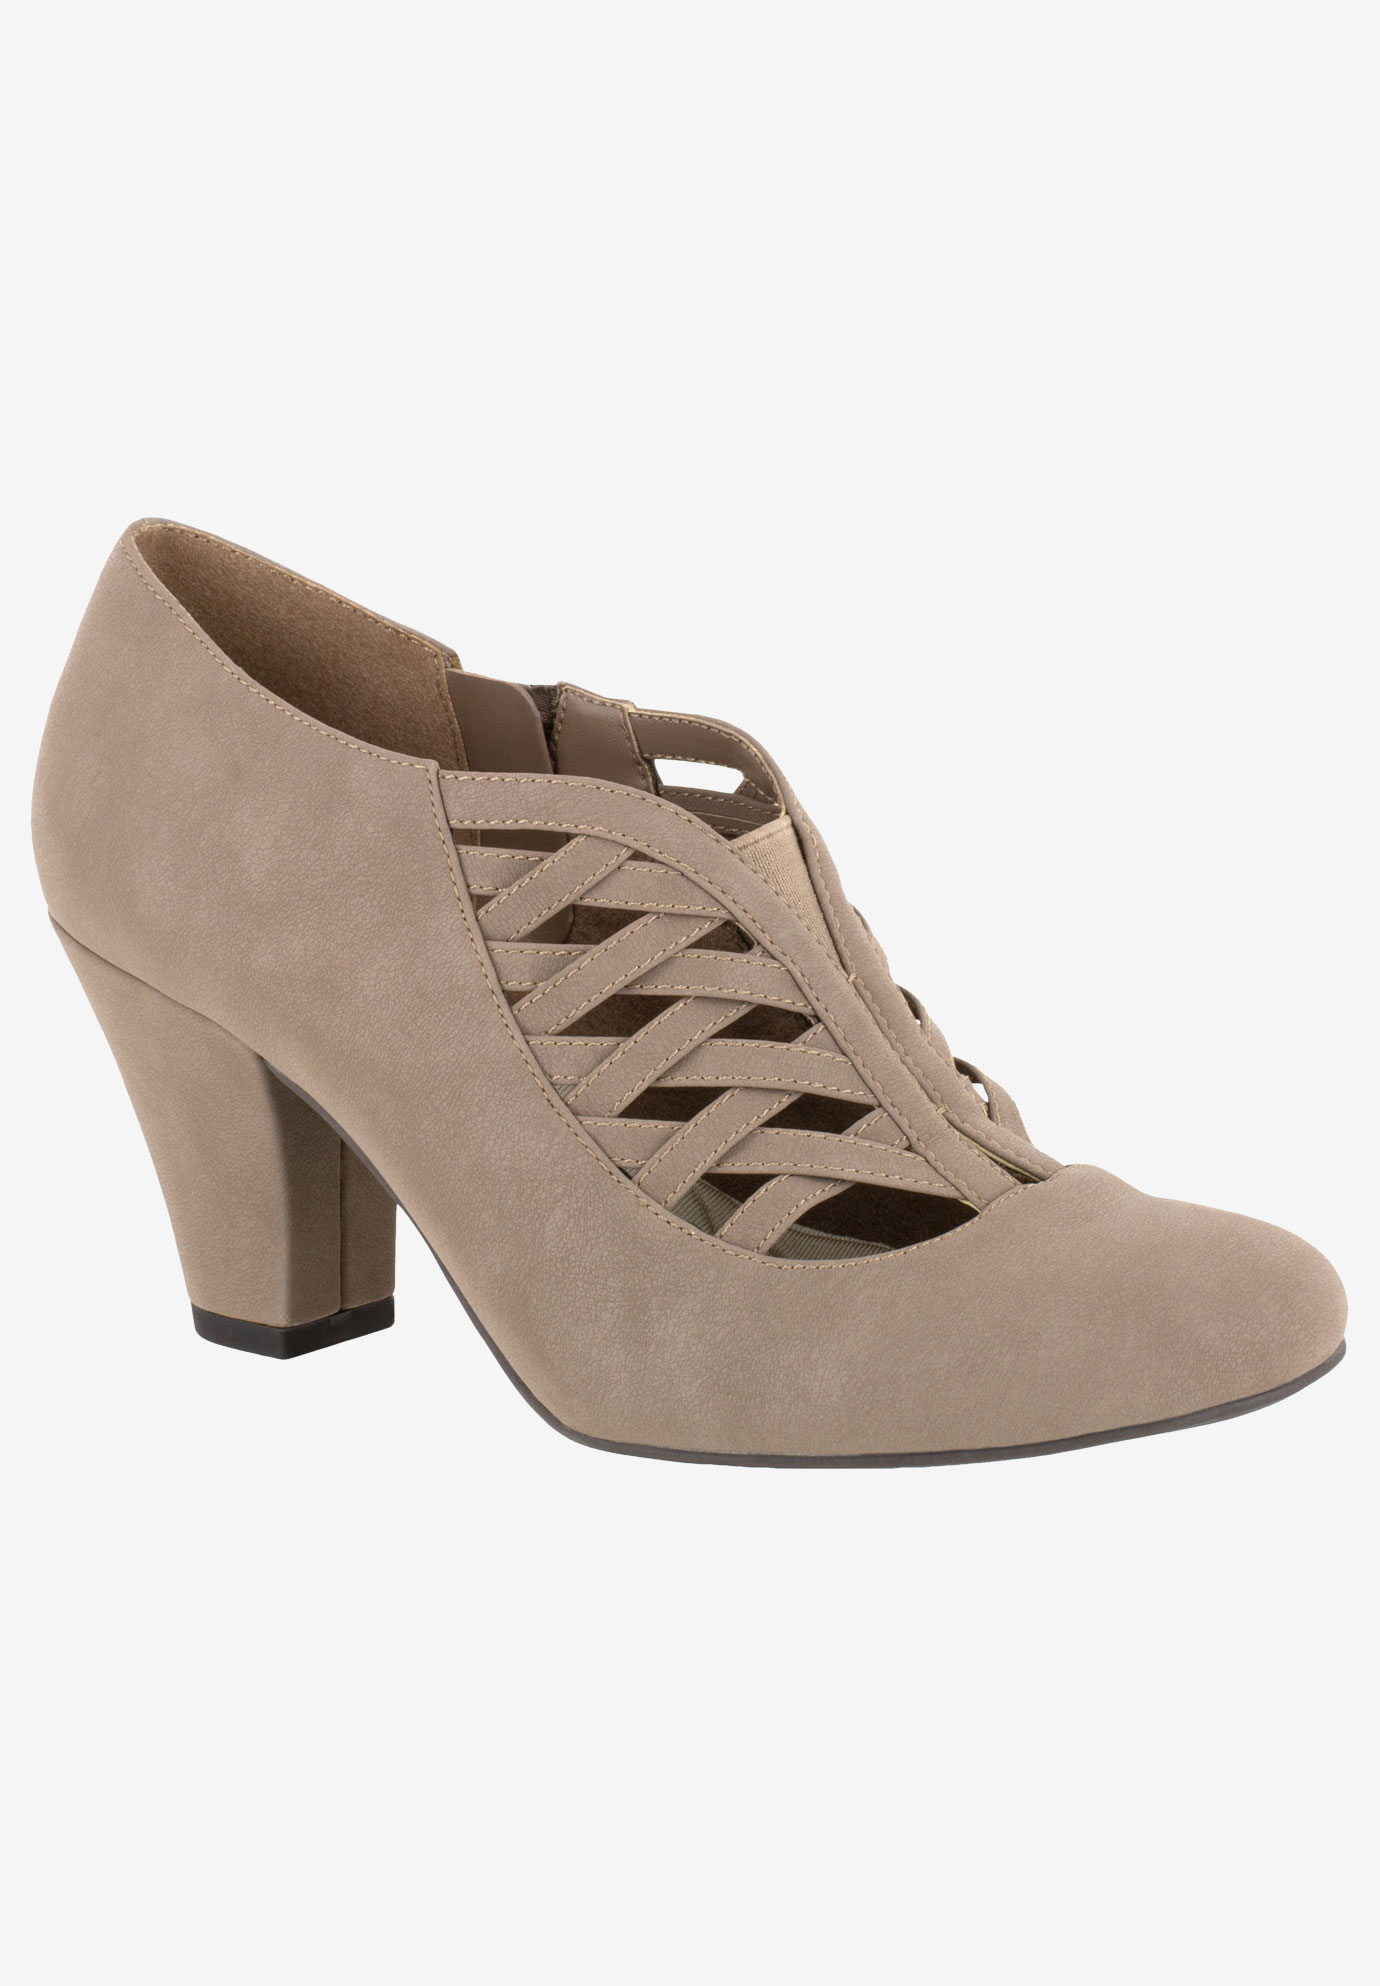 Emmy Shootie by Easy Street,